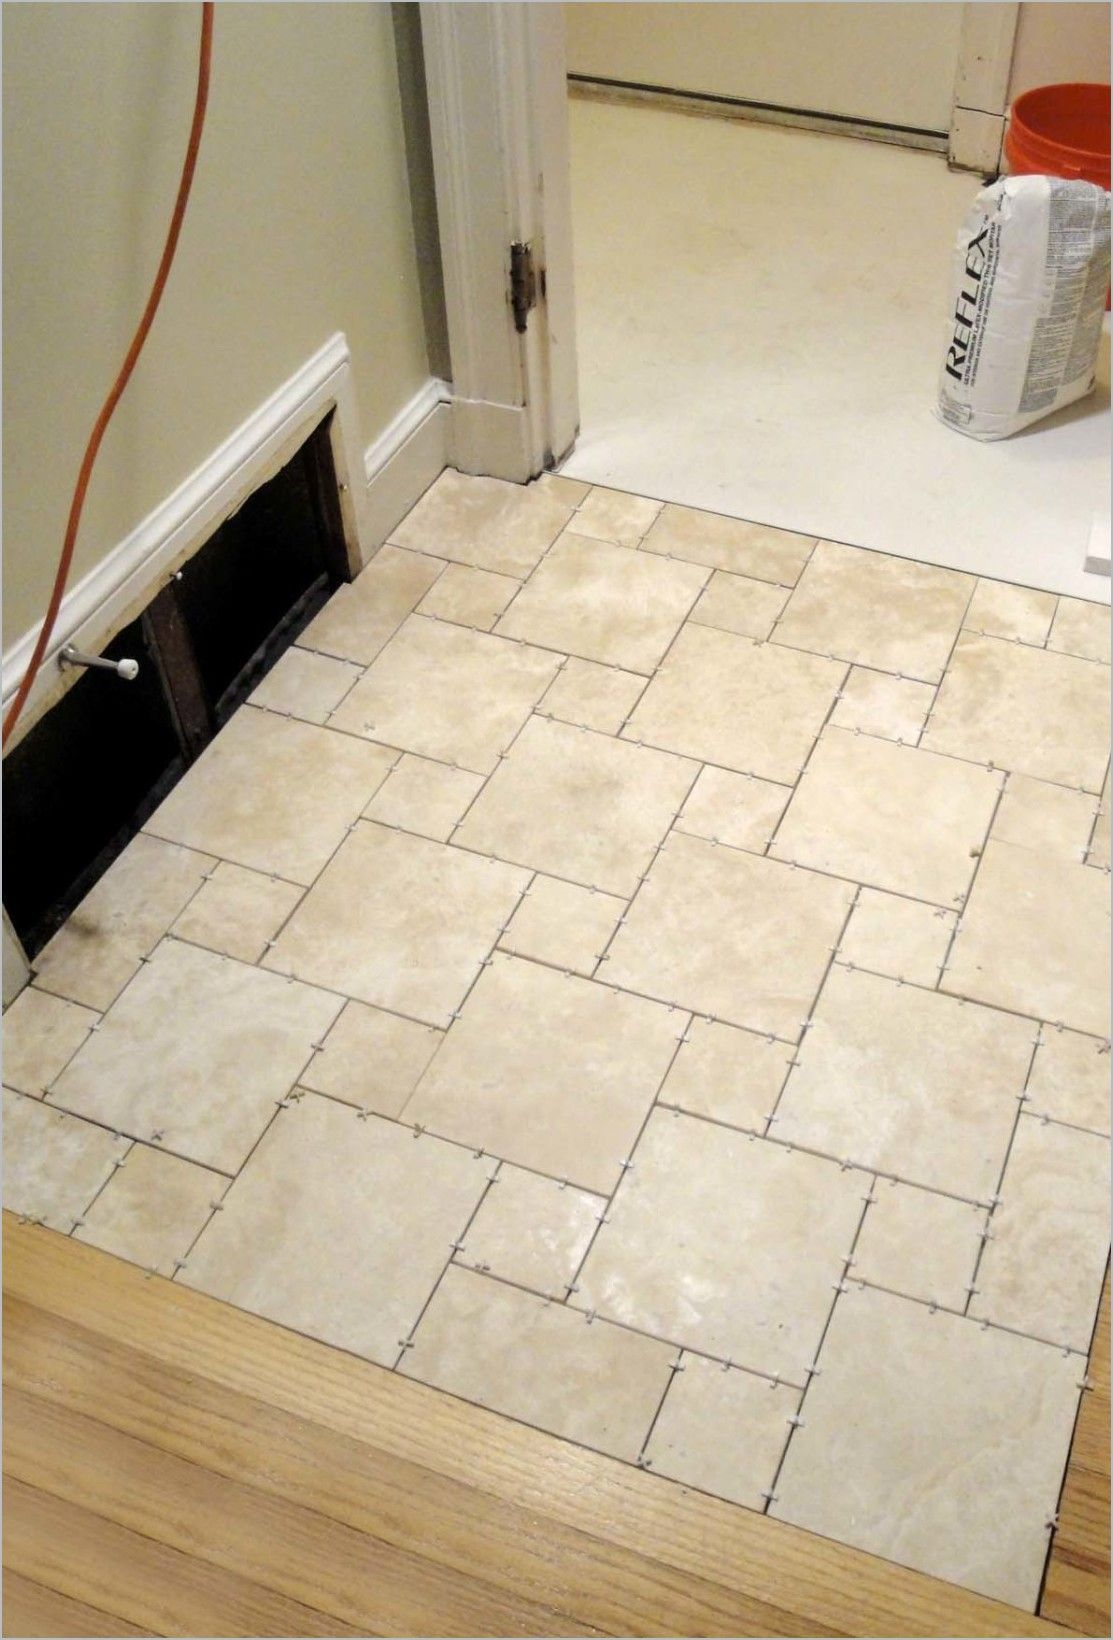 Porcelain Tile Bathroom Floor Ideas Design Make The Looks Greater Enjoy Modern Ceramic